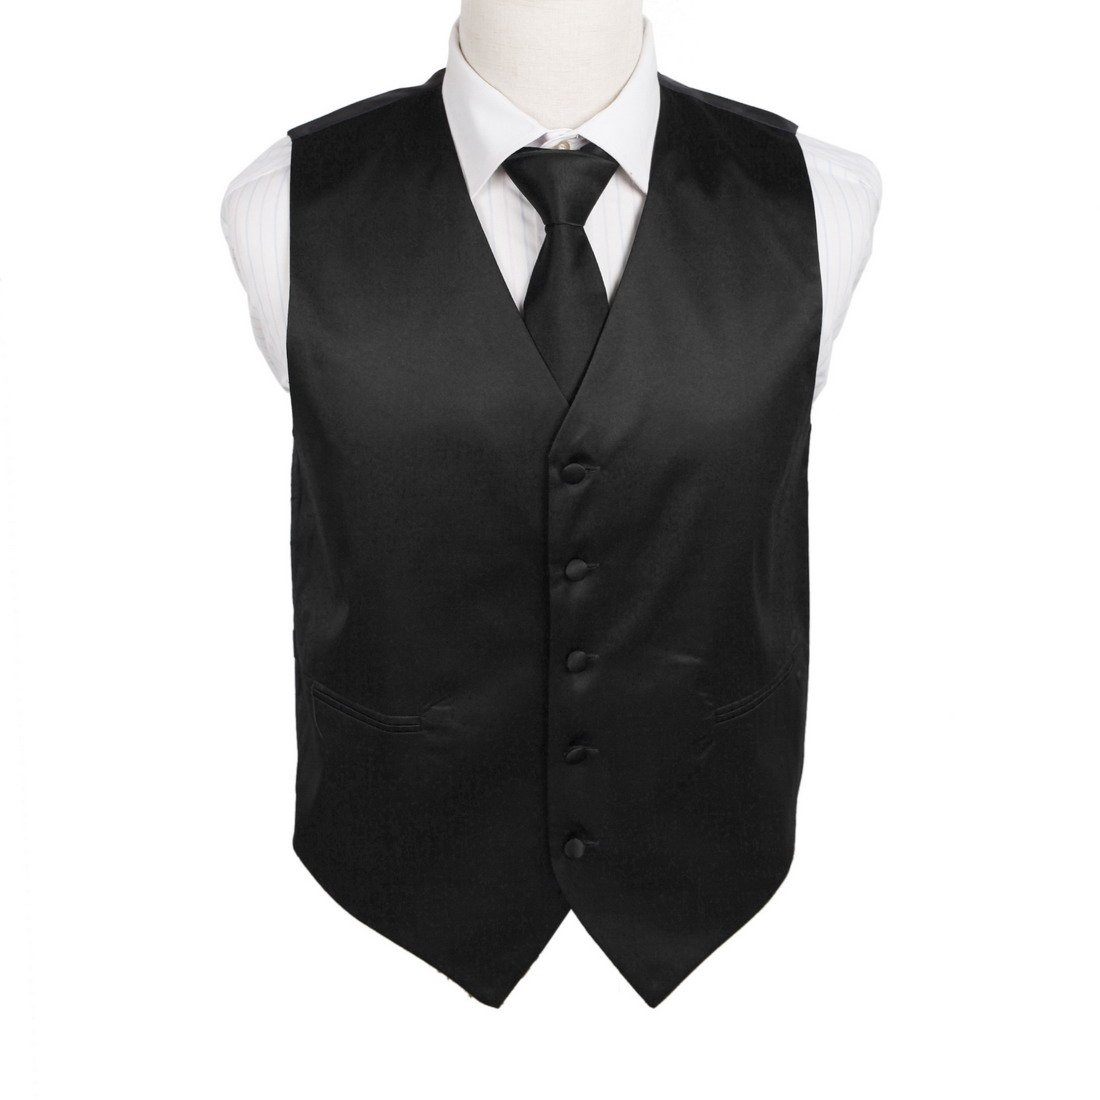 DGDE0001-S Black England Designer Solid Microfiber Satin For Working Day Vest Matching Neck Tie By Dan Smith